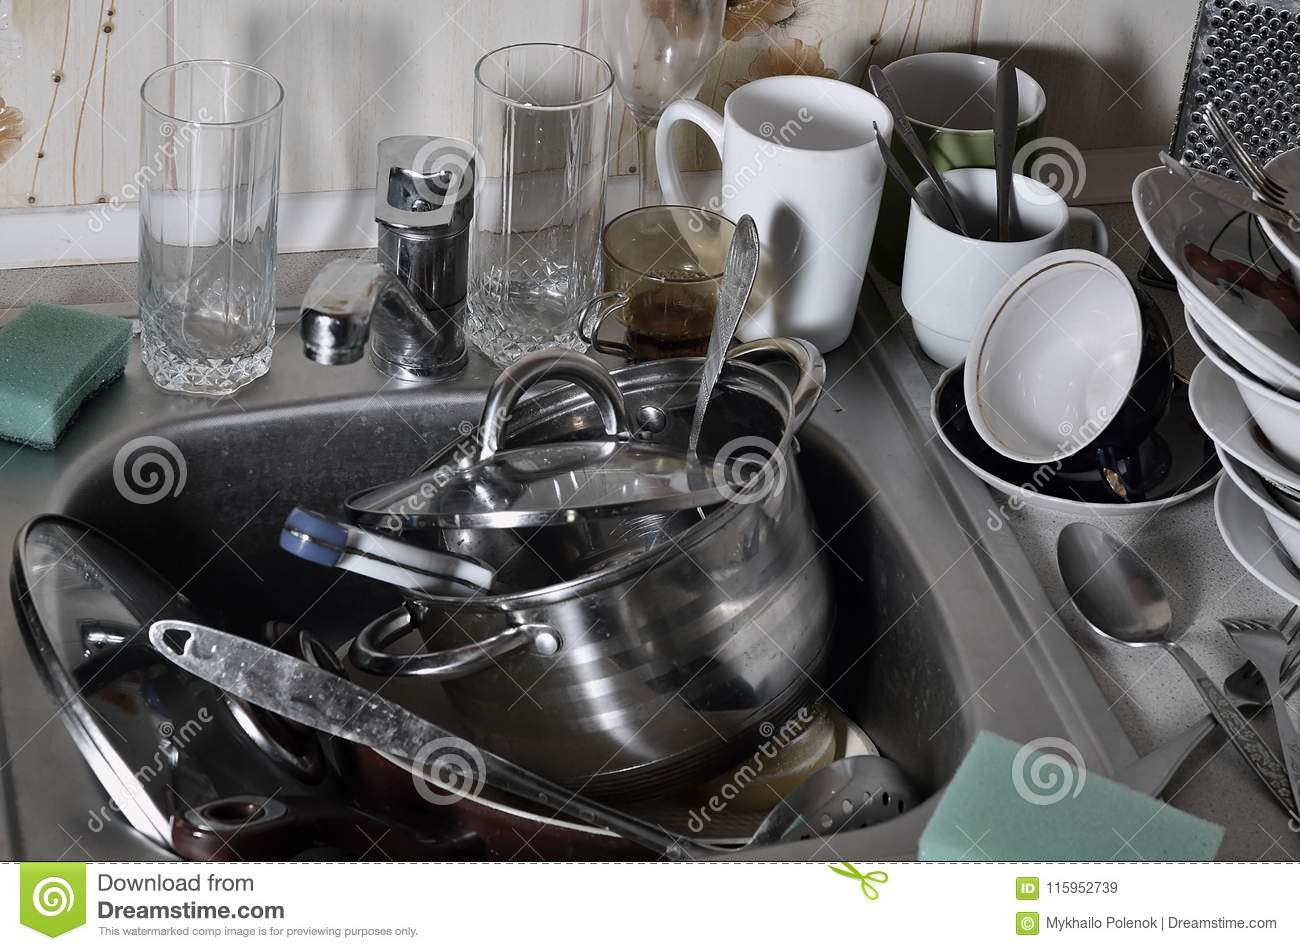 A huge pile of unwashed dishes in the kitchen sink and on the countertop. A lot of utensils and kitchen appliances before washing